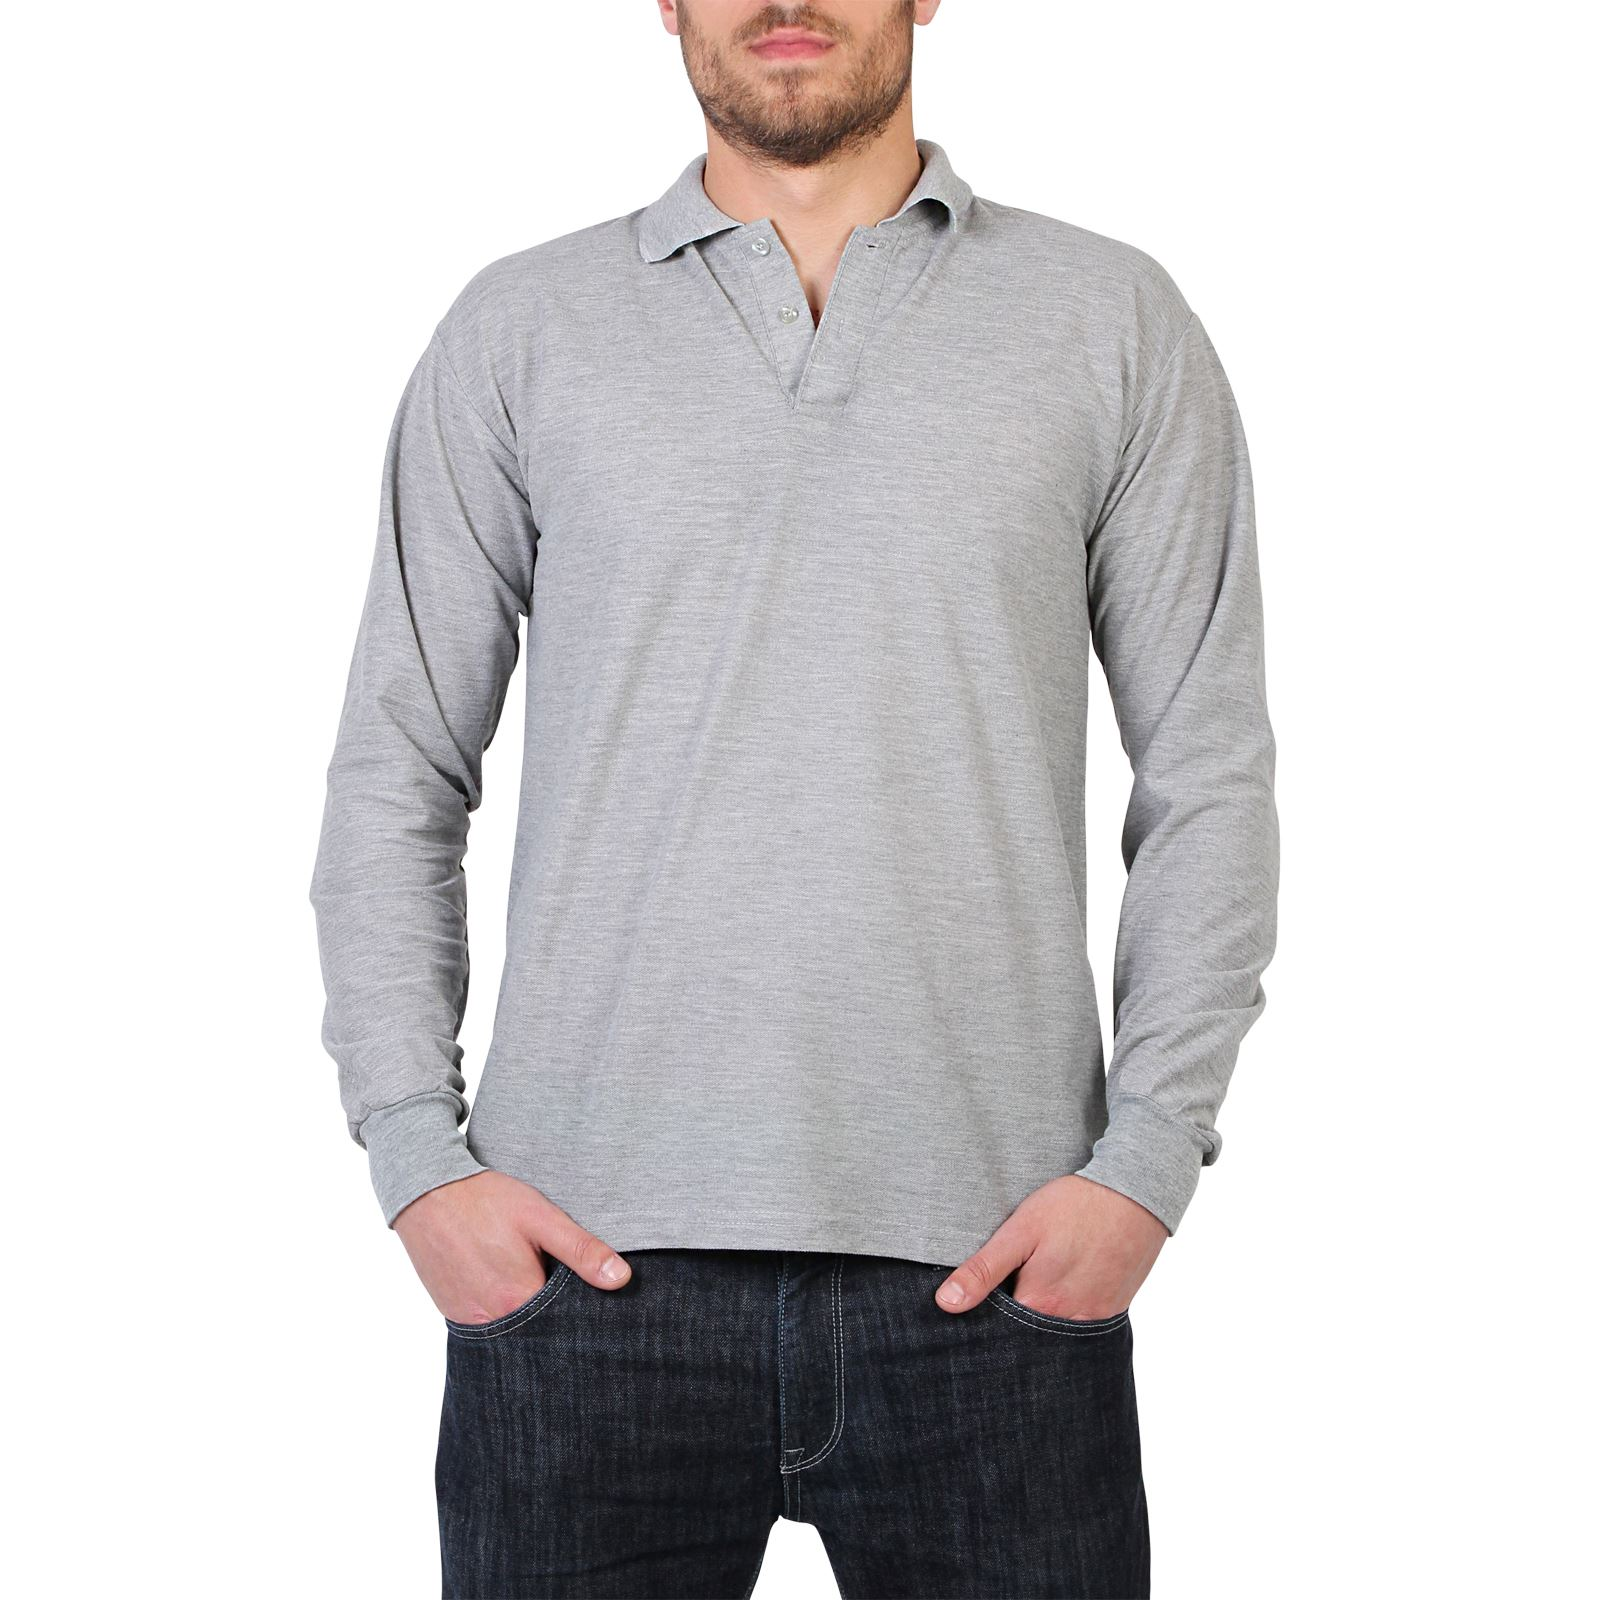 Mens casual long sleeve polo t shirt top plain regular for Mens polo shirts online